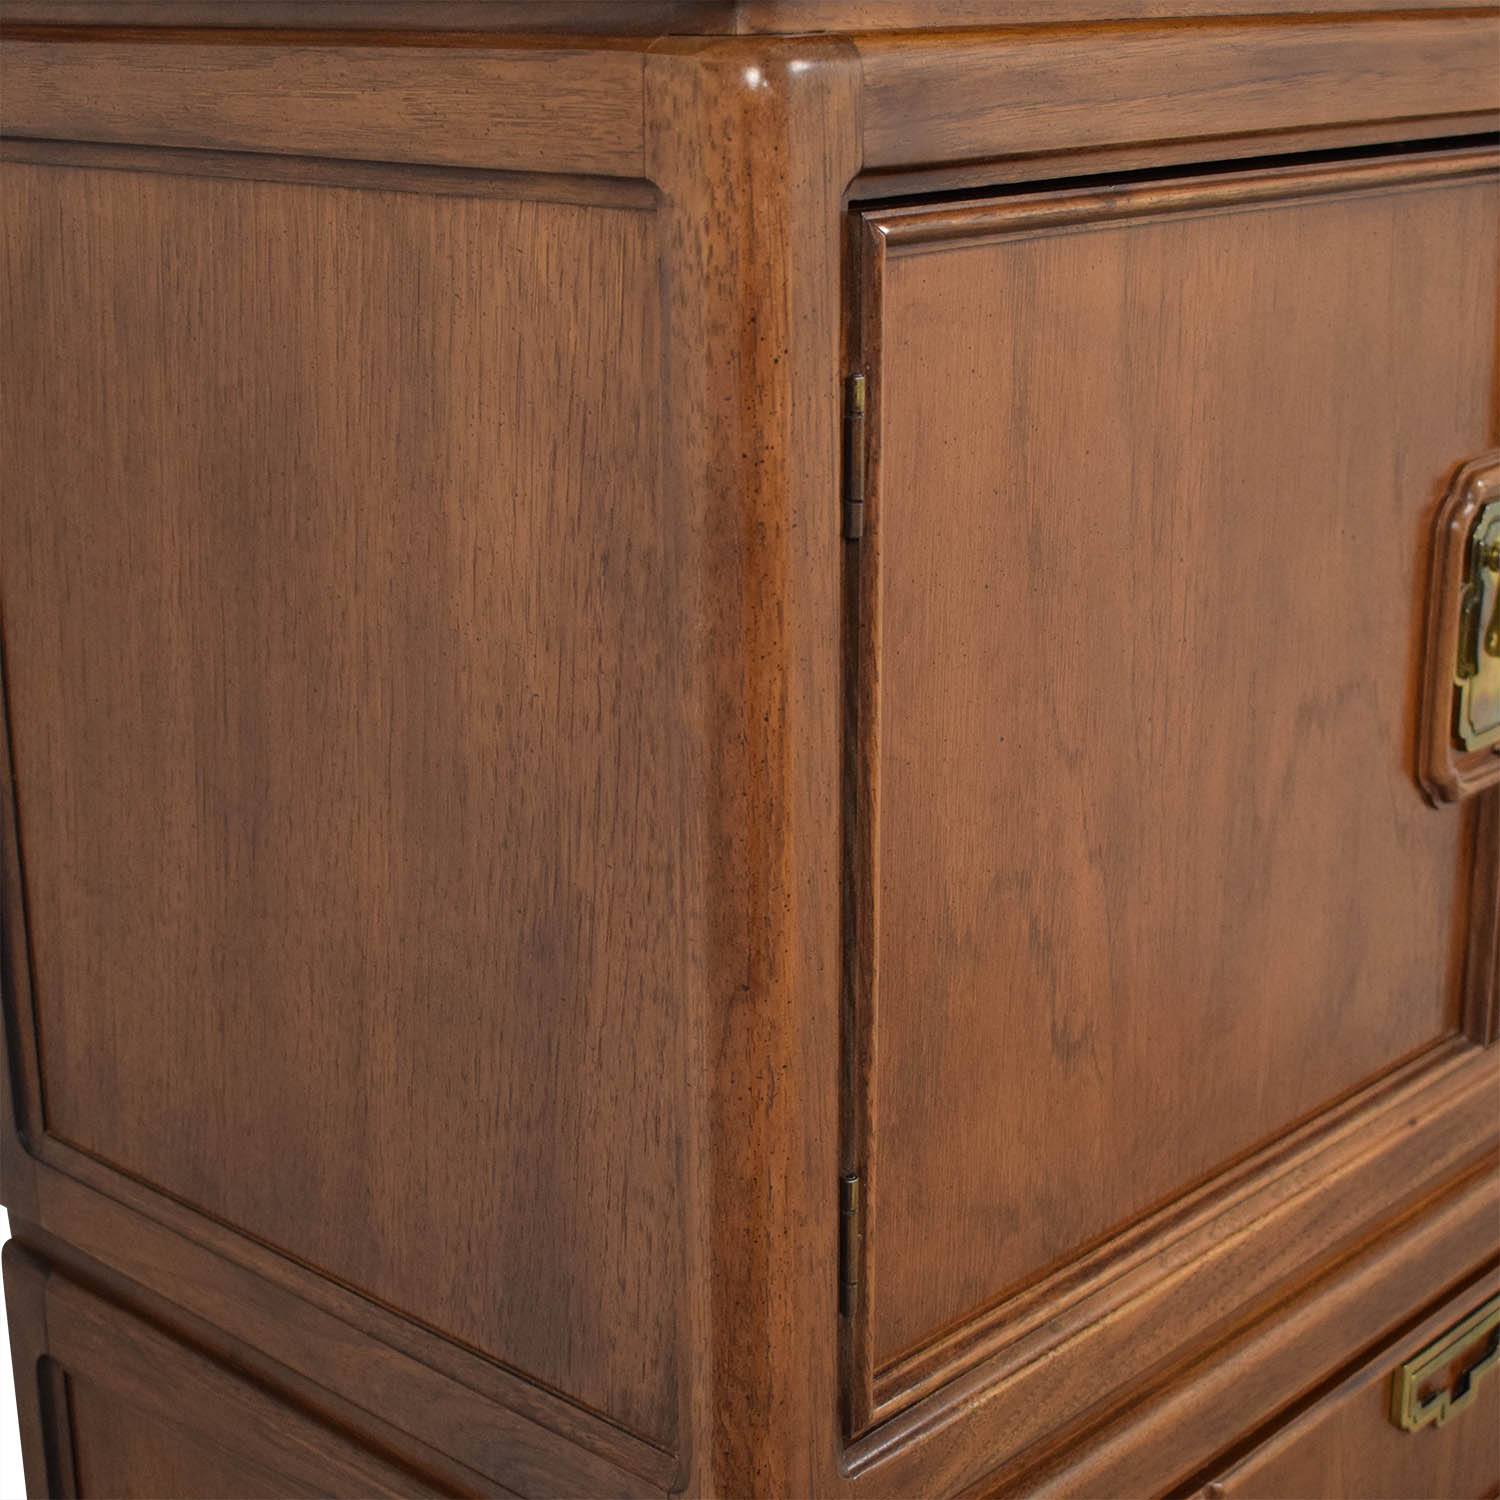 Thomasville Thomasville Armoire with Drawers for sale